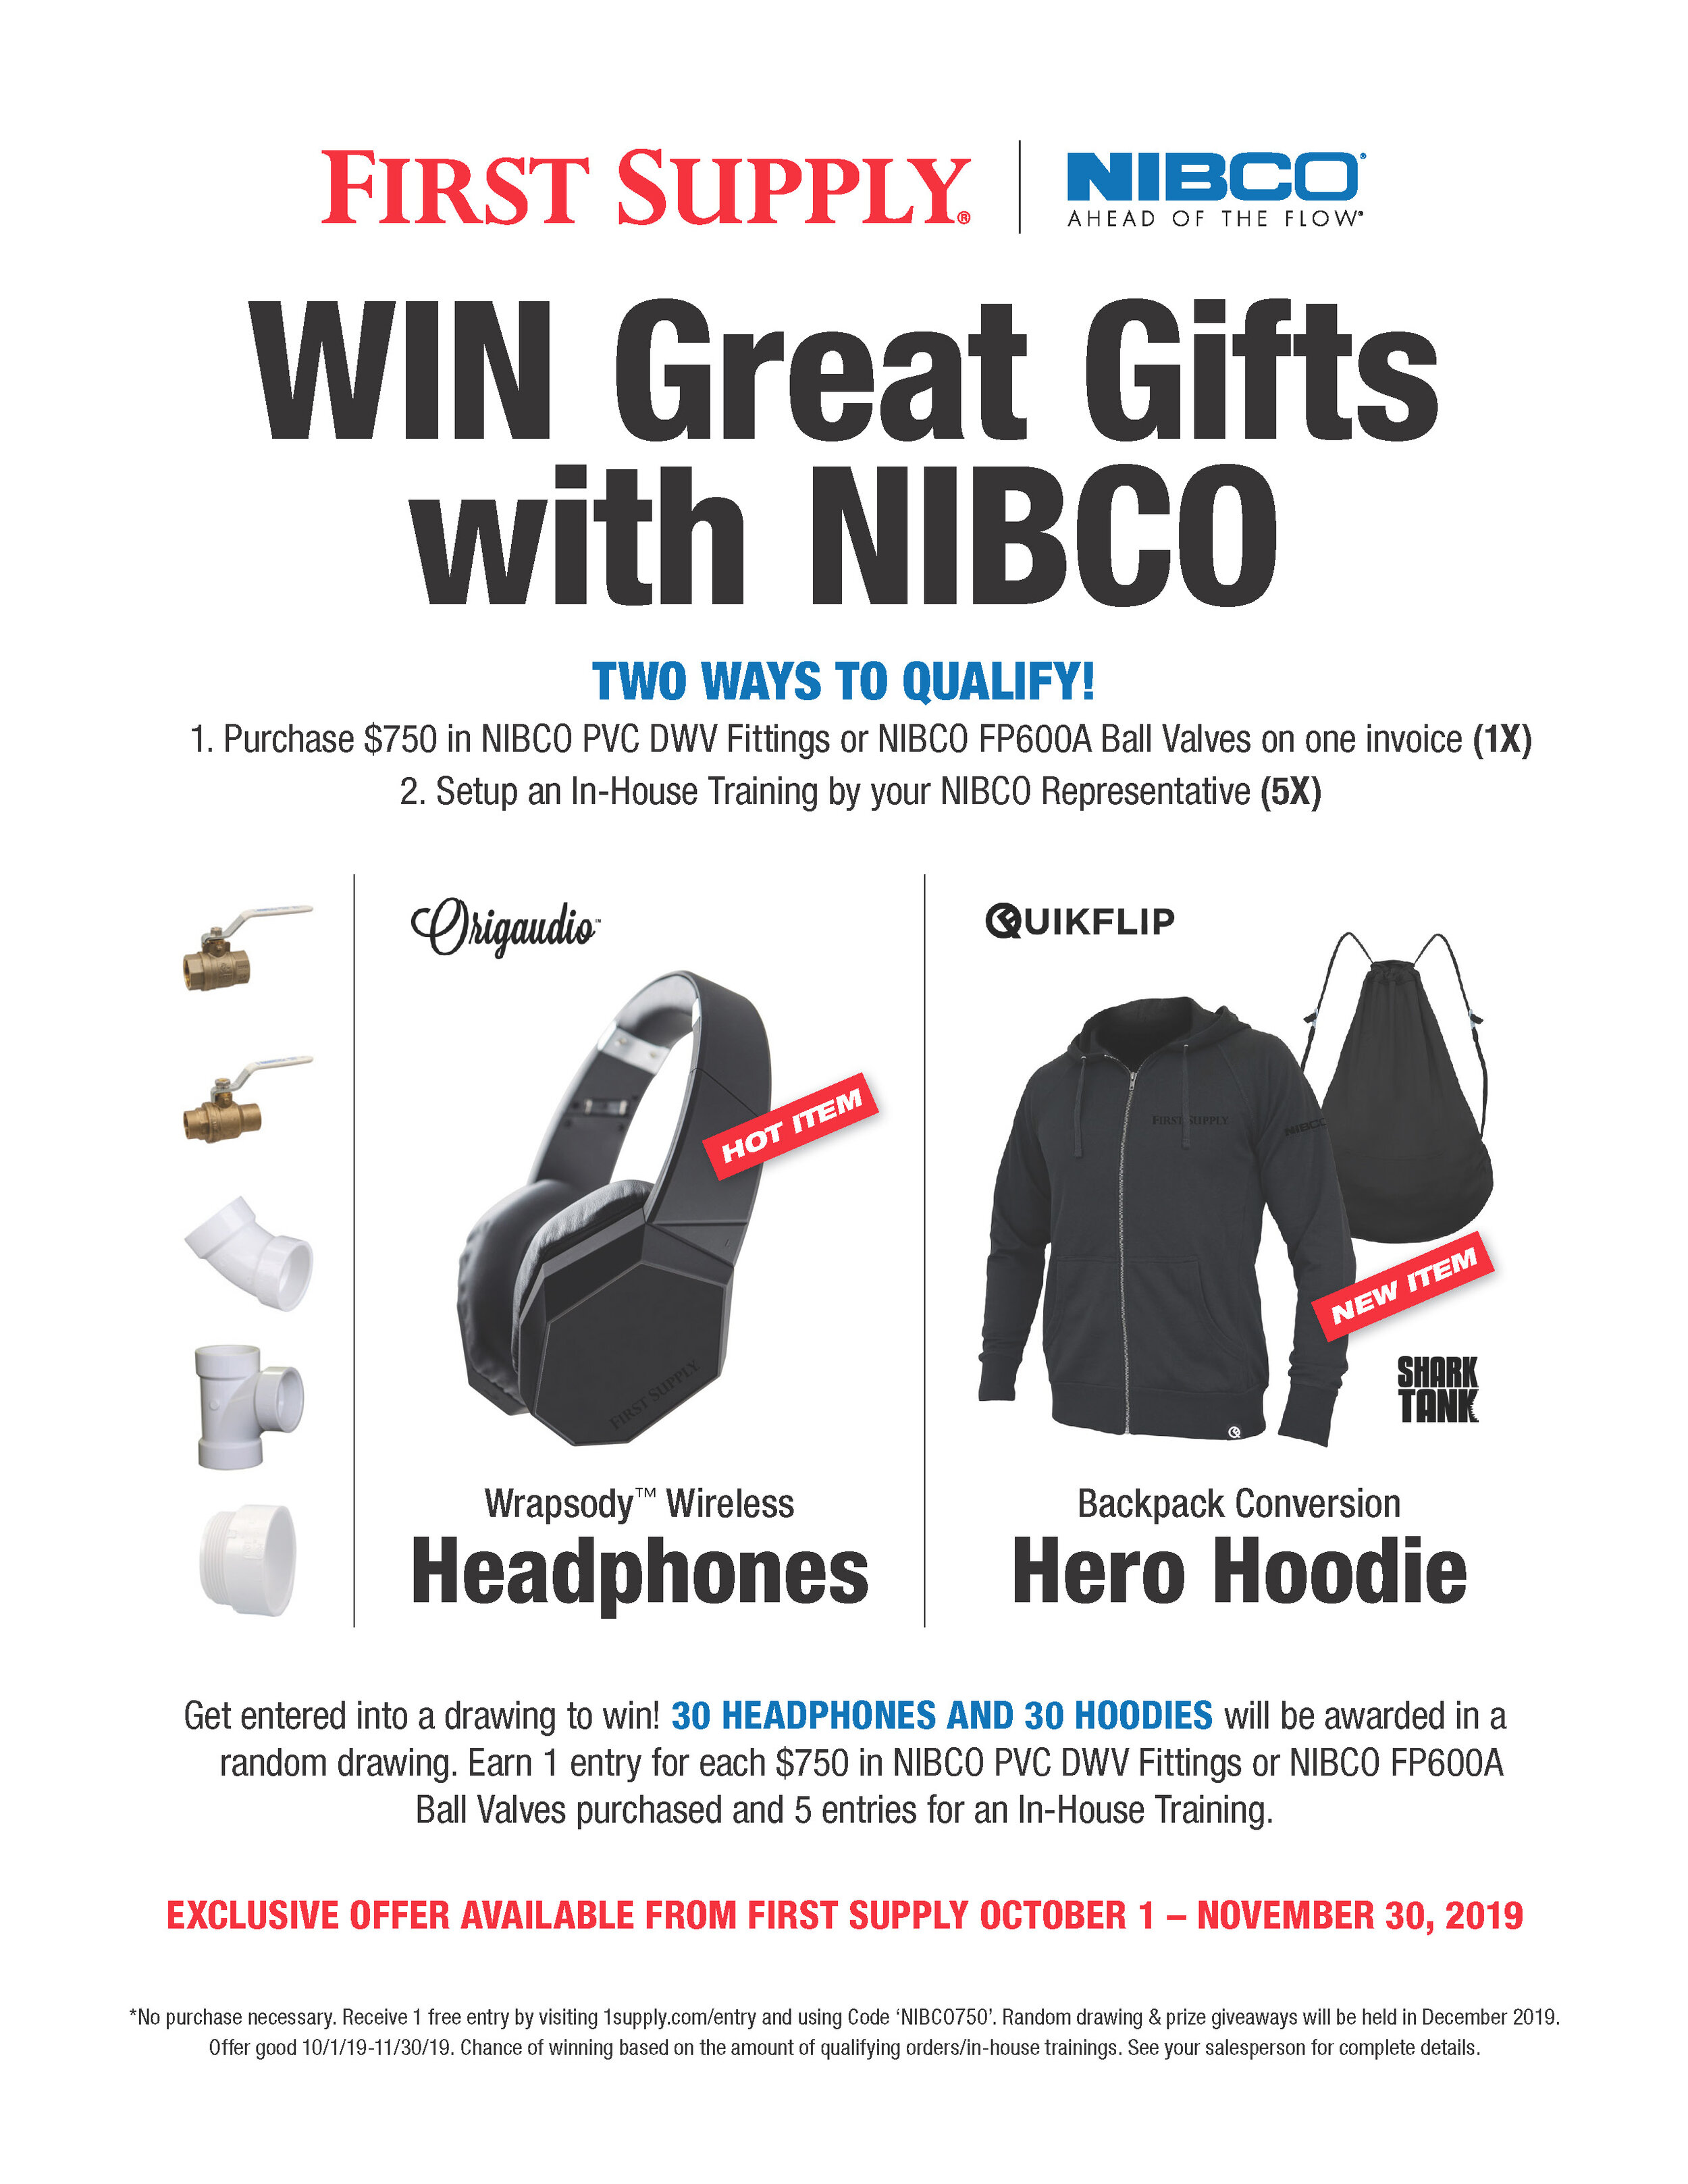 FS-NIBCO-Headphones-Hoodie-Offer-2019.jpg